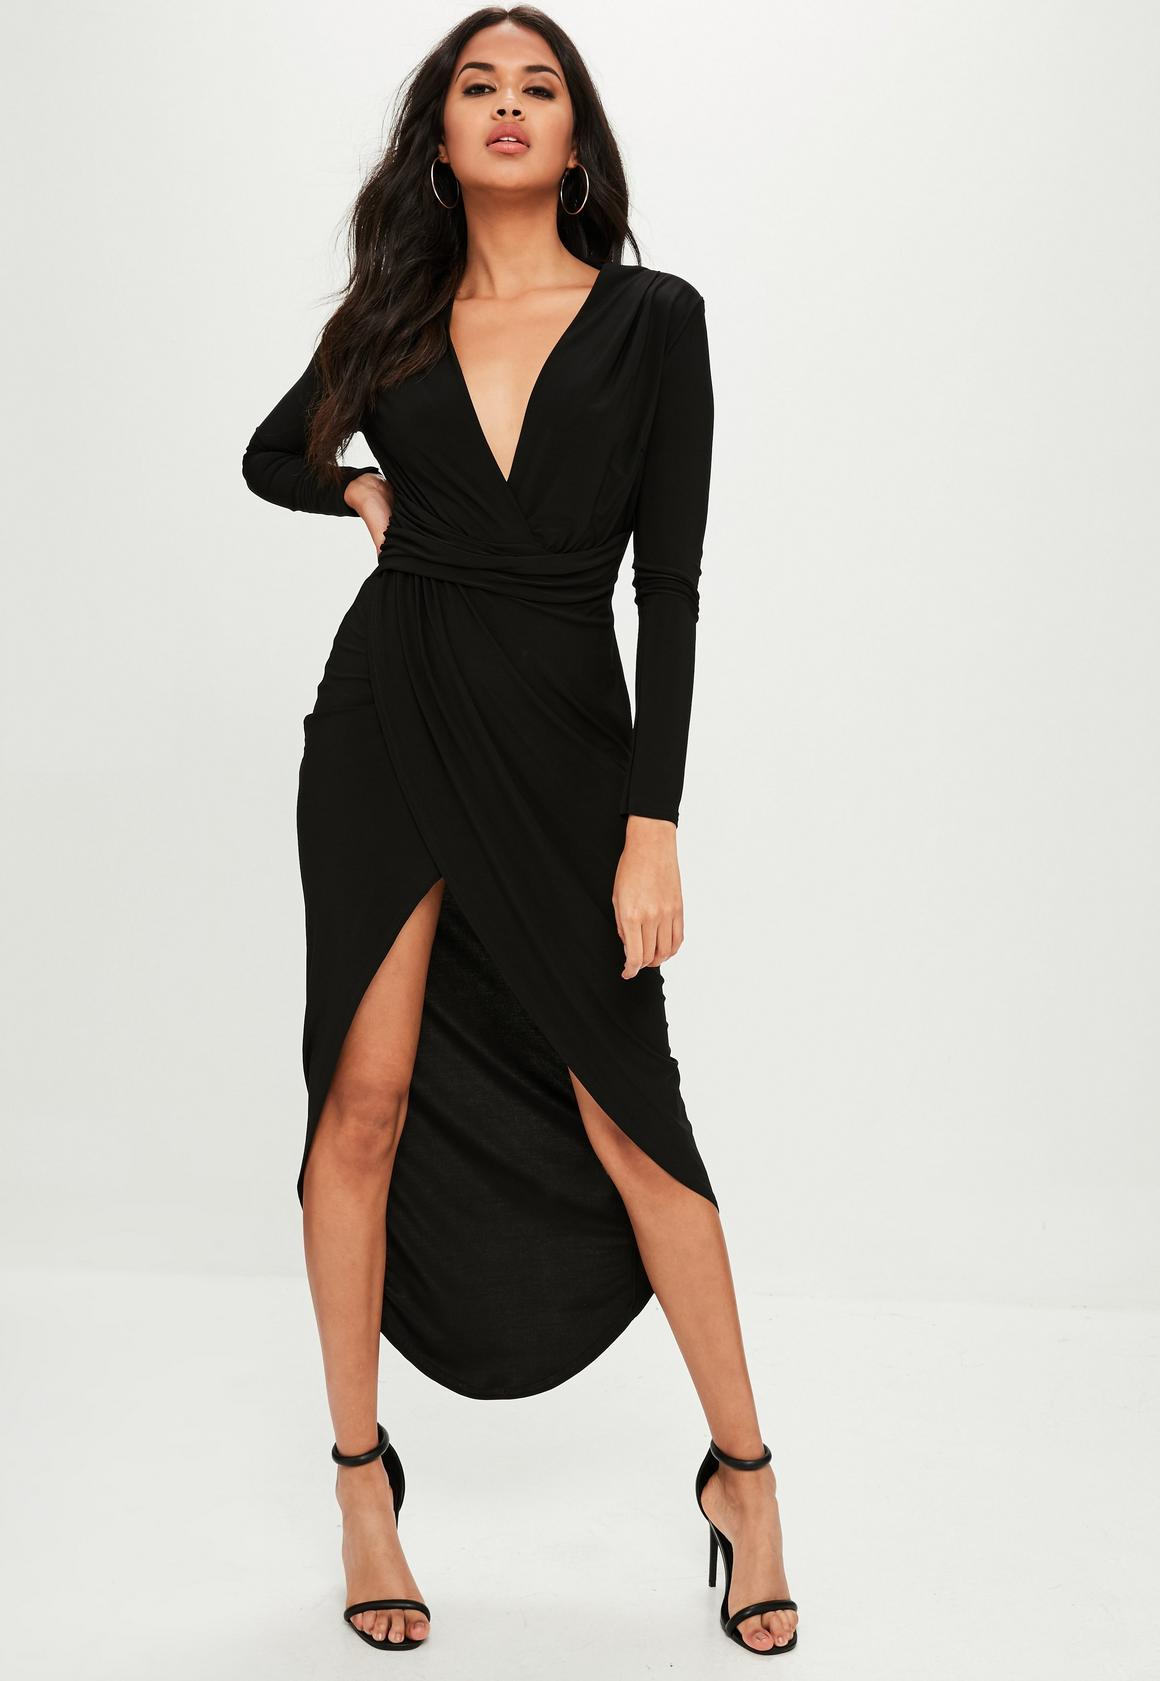 Long sleeve black maxi dress with slit